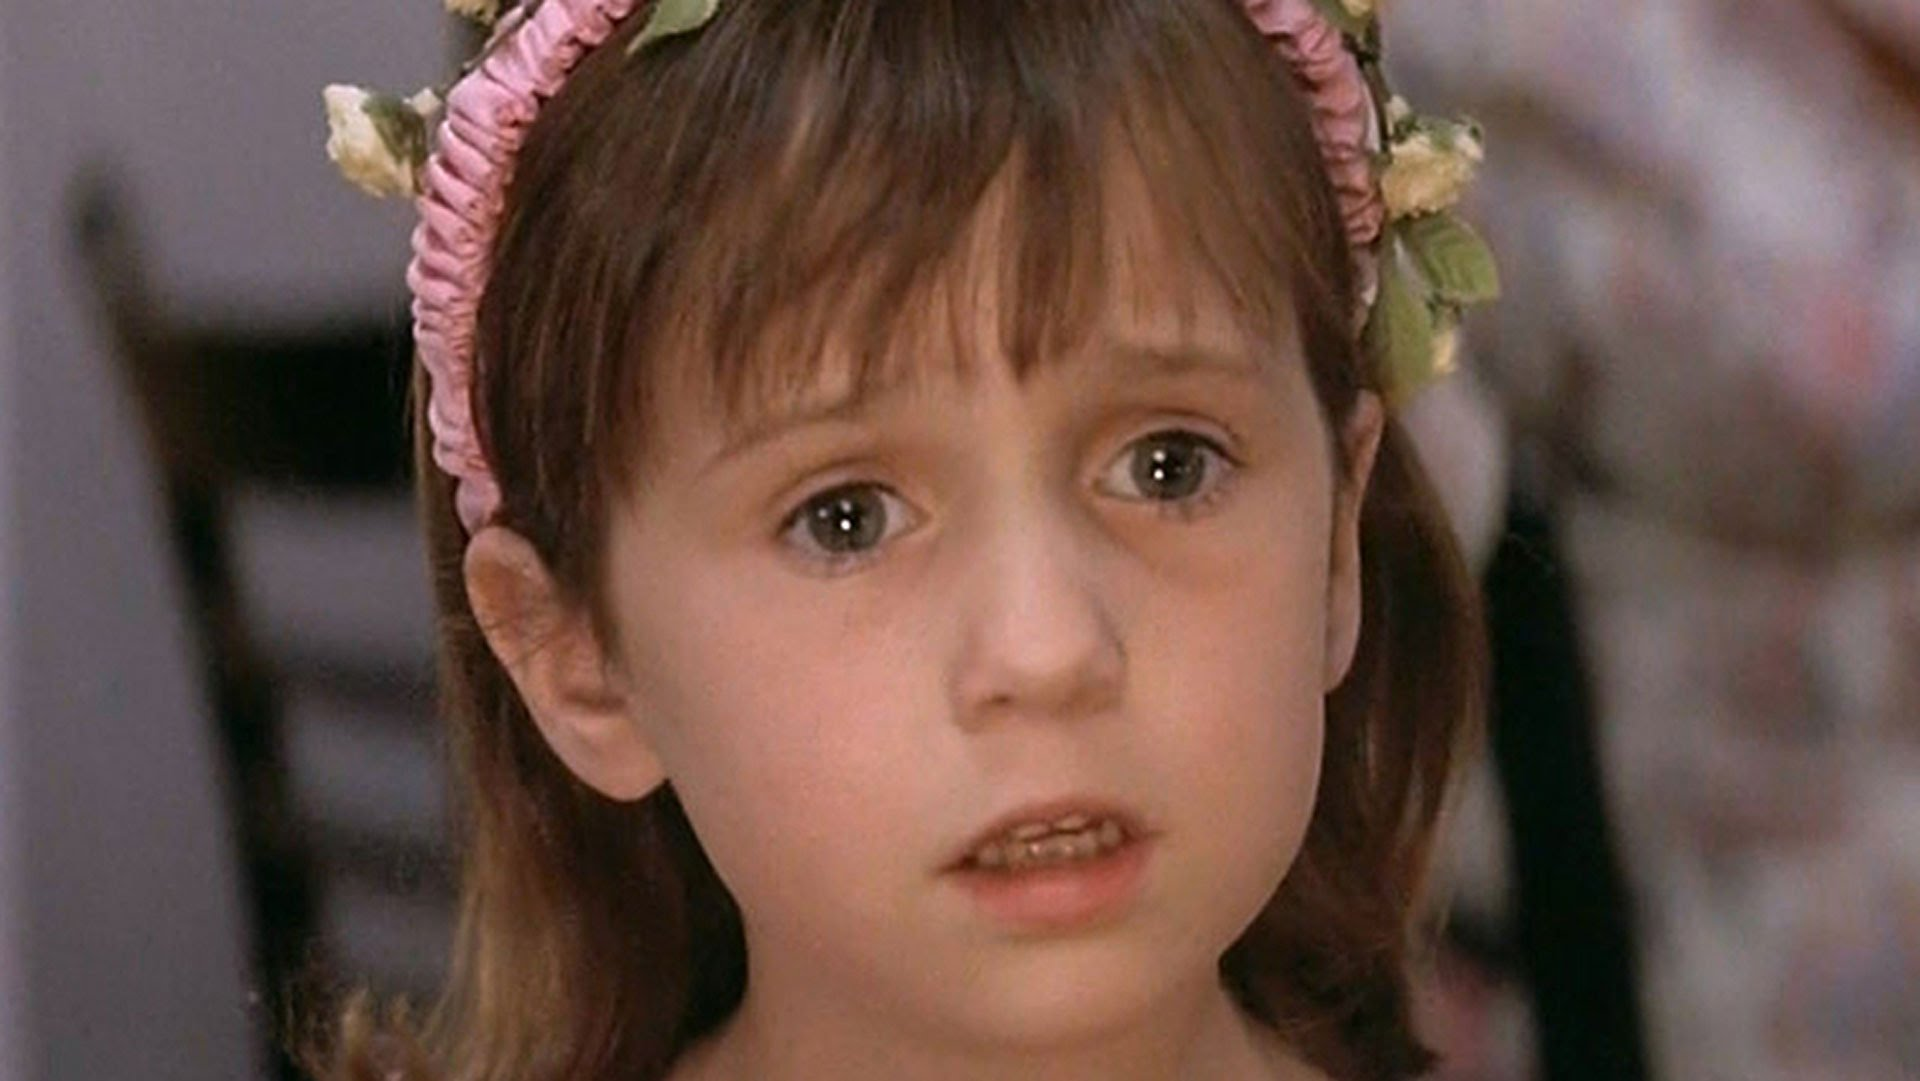 What The Little Girl From Mrs. Doubtfire Looks Like Now - YouTube